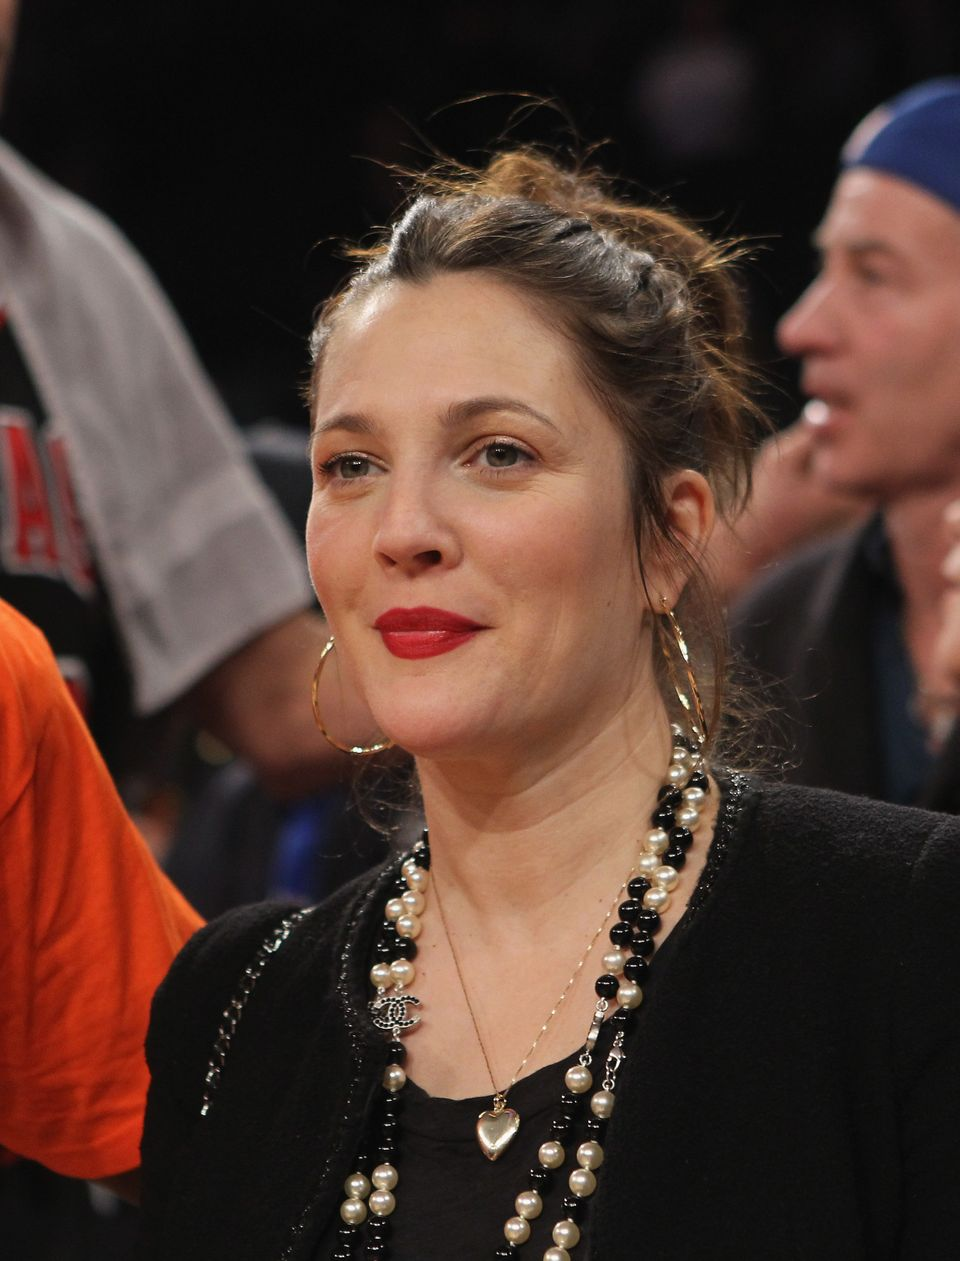 """Though she recently tied the knot with art consultant Will Kopelman, Drew Barrymore has actually already been <a href=""""http:/"""